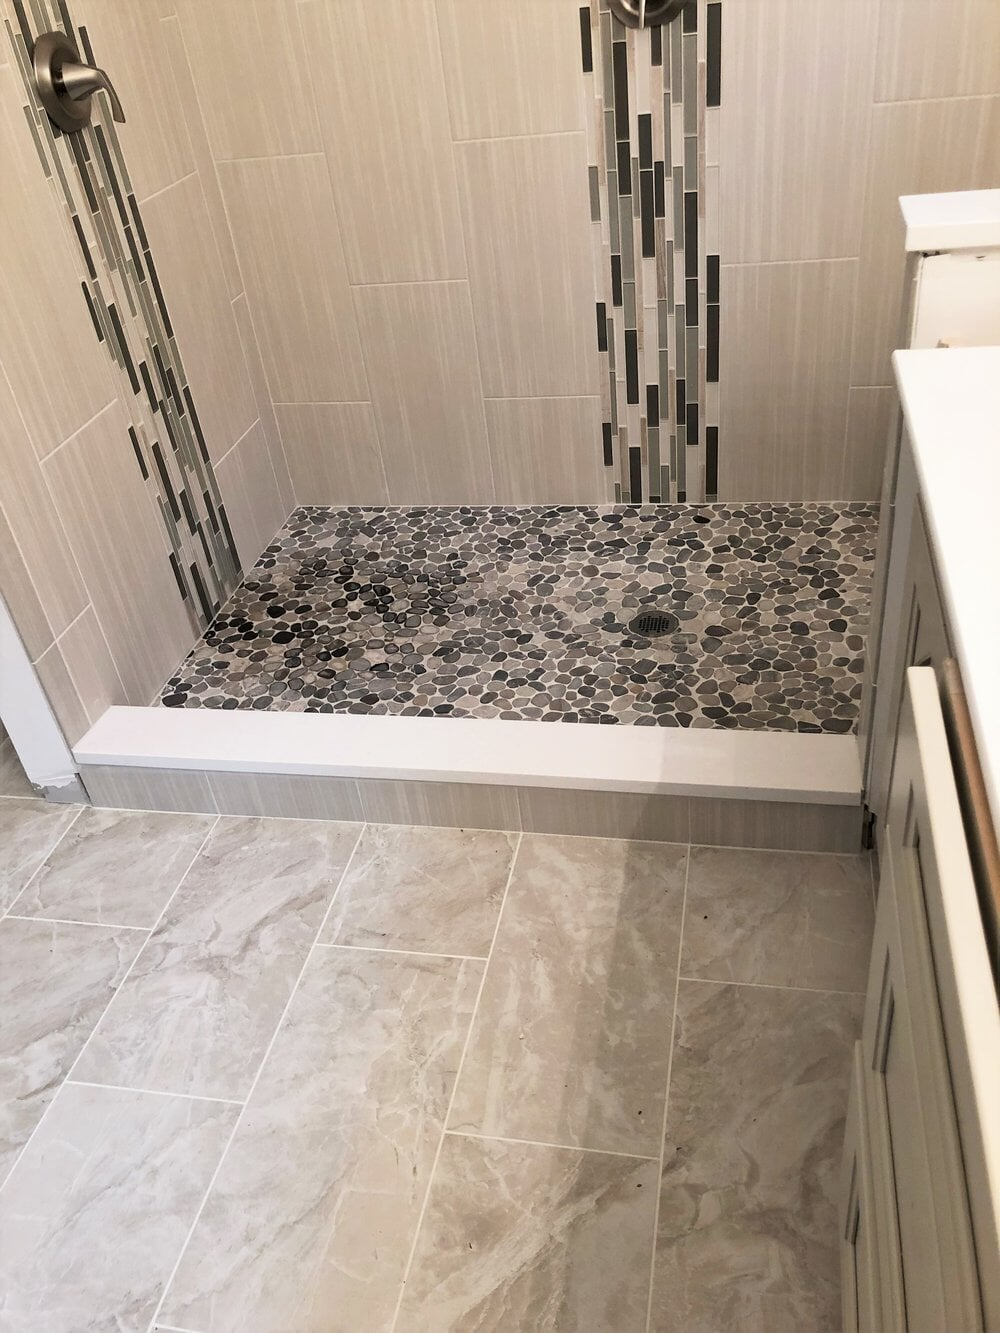 Custom glass tile work in new shower in Mooresville, NC from LITTLE Wood Flooring & Cabinetry